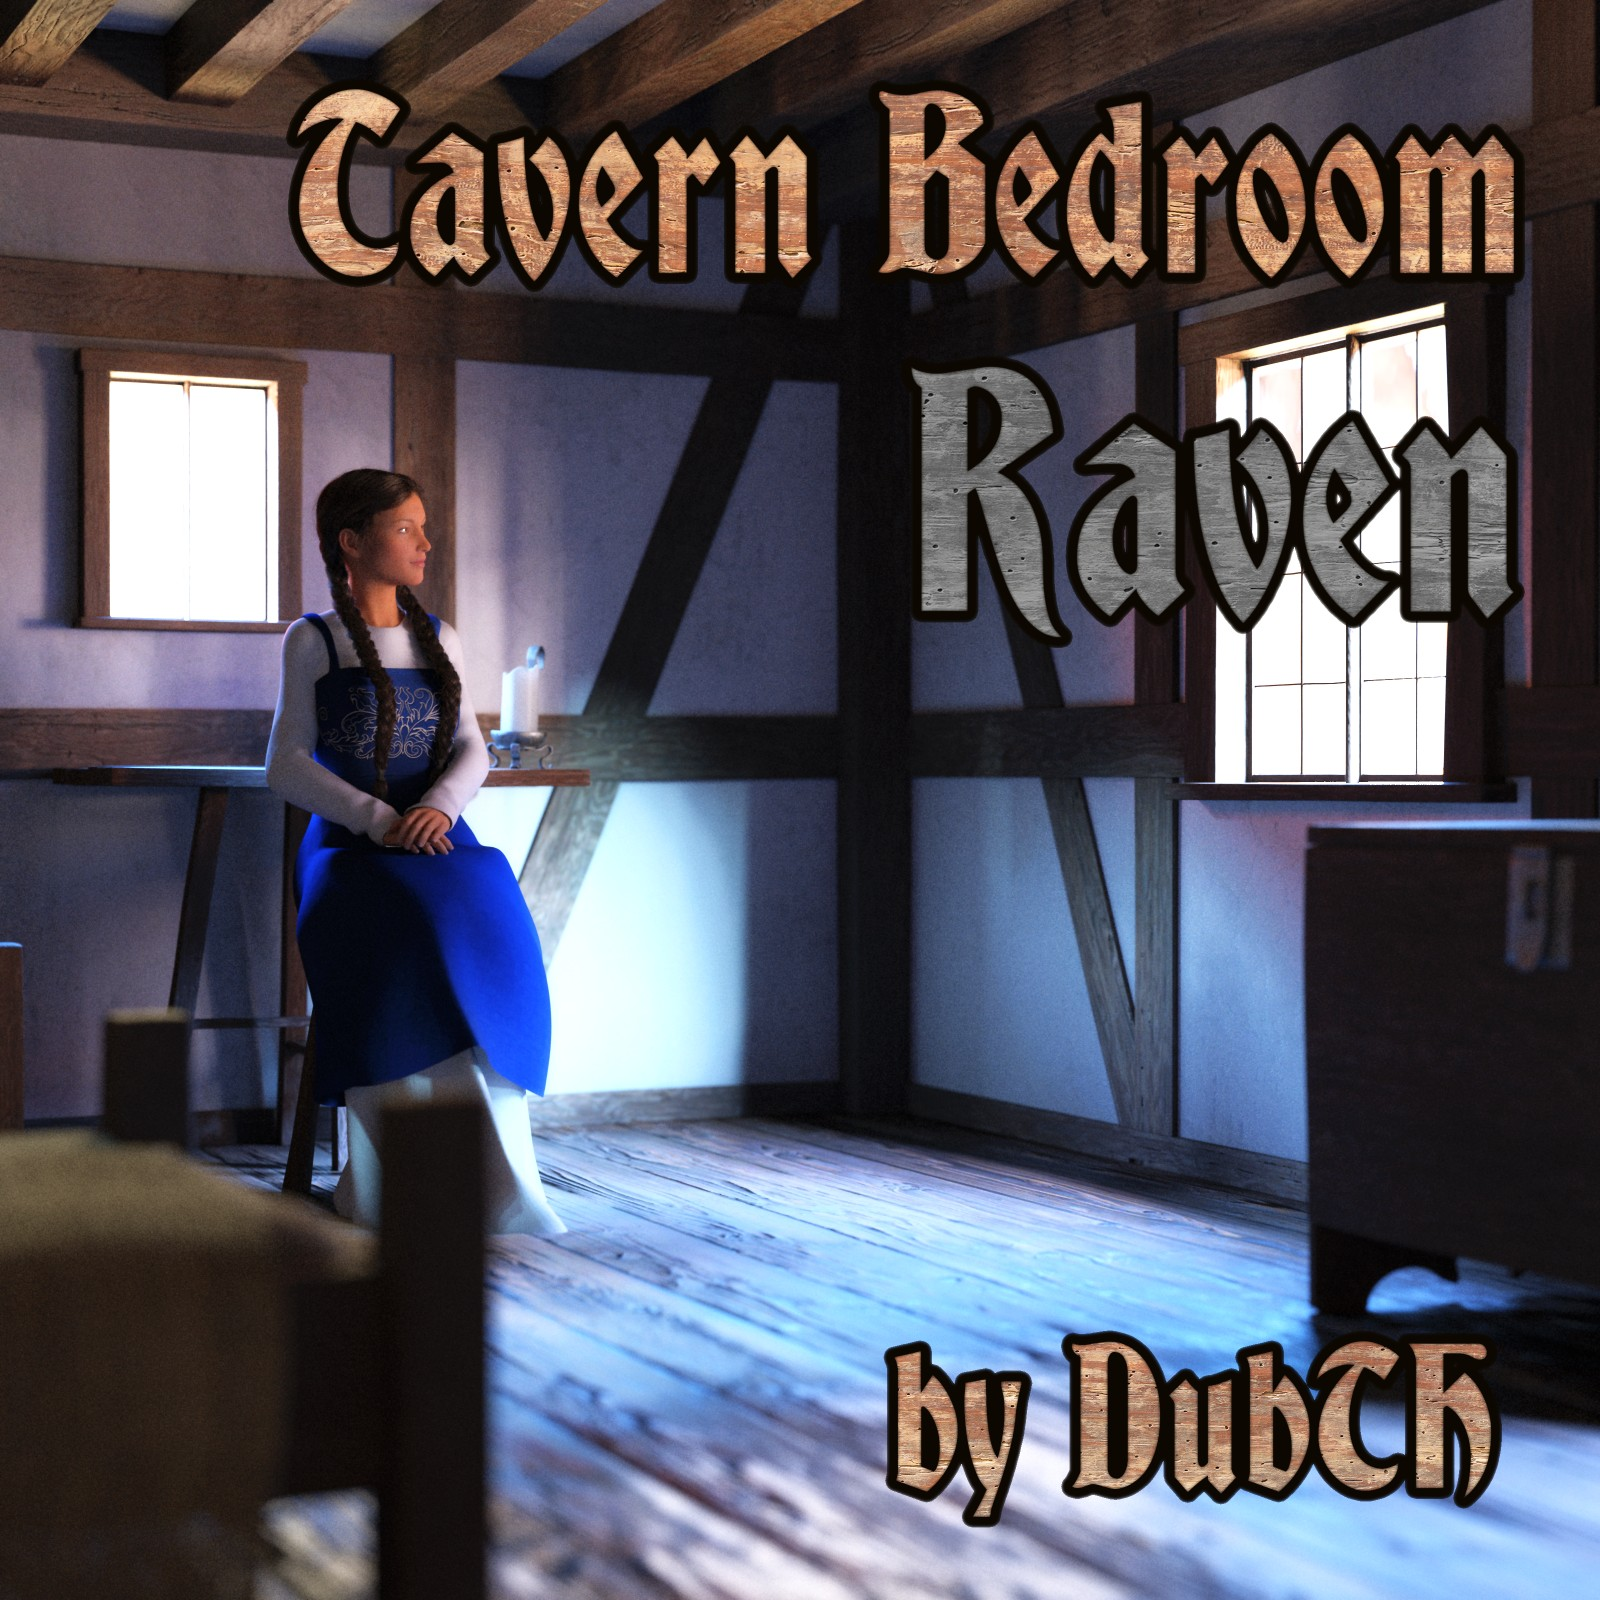 Tavern Bedroom Raven for Iray